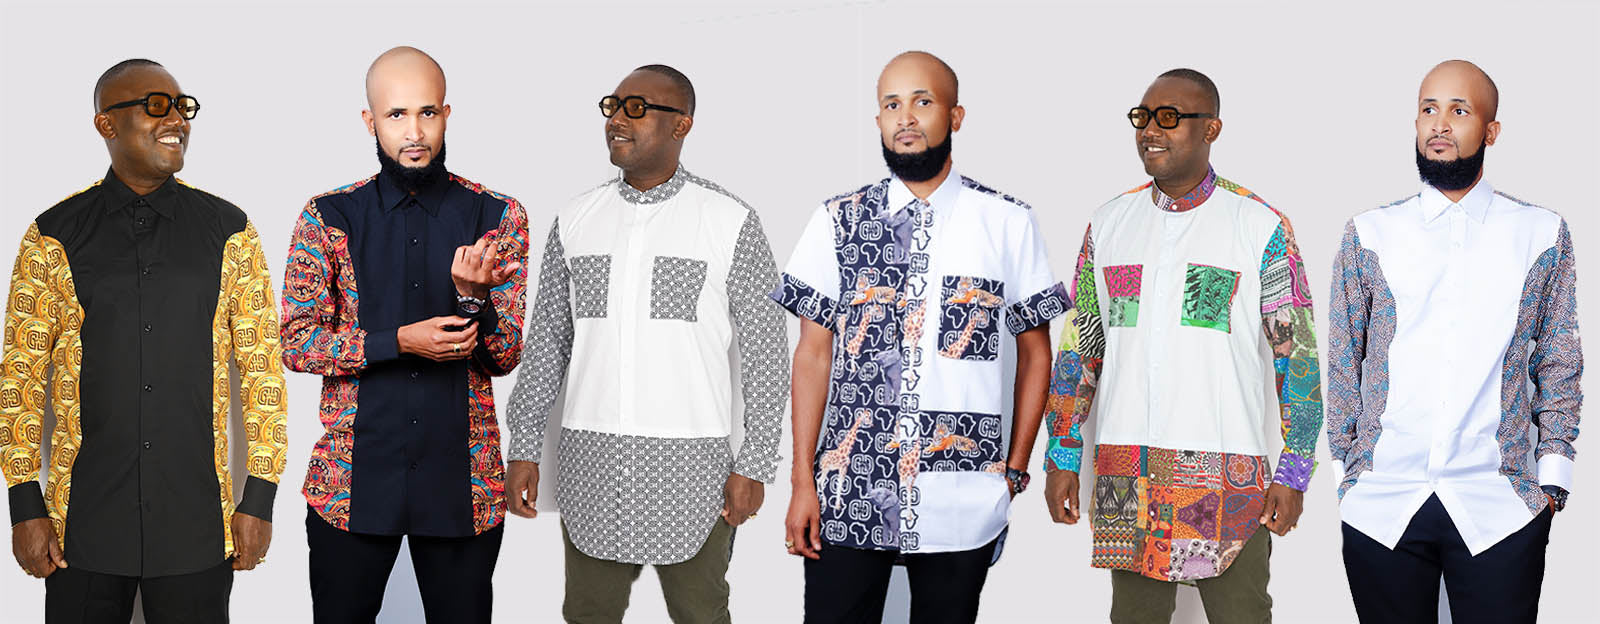 Discover the most up-to-date men's shirts | NC | Stylish African Shirts for Men